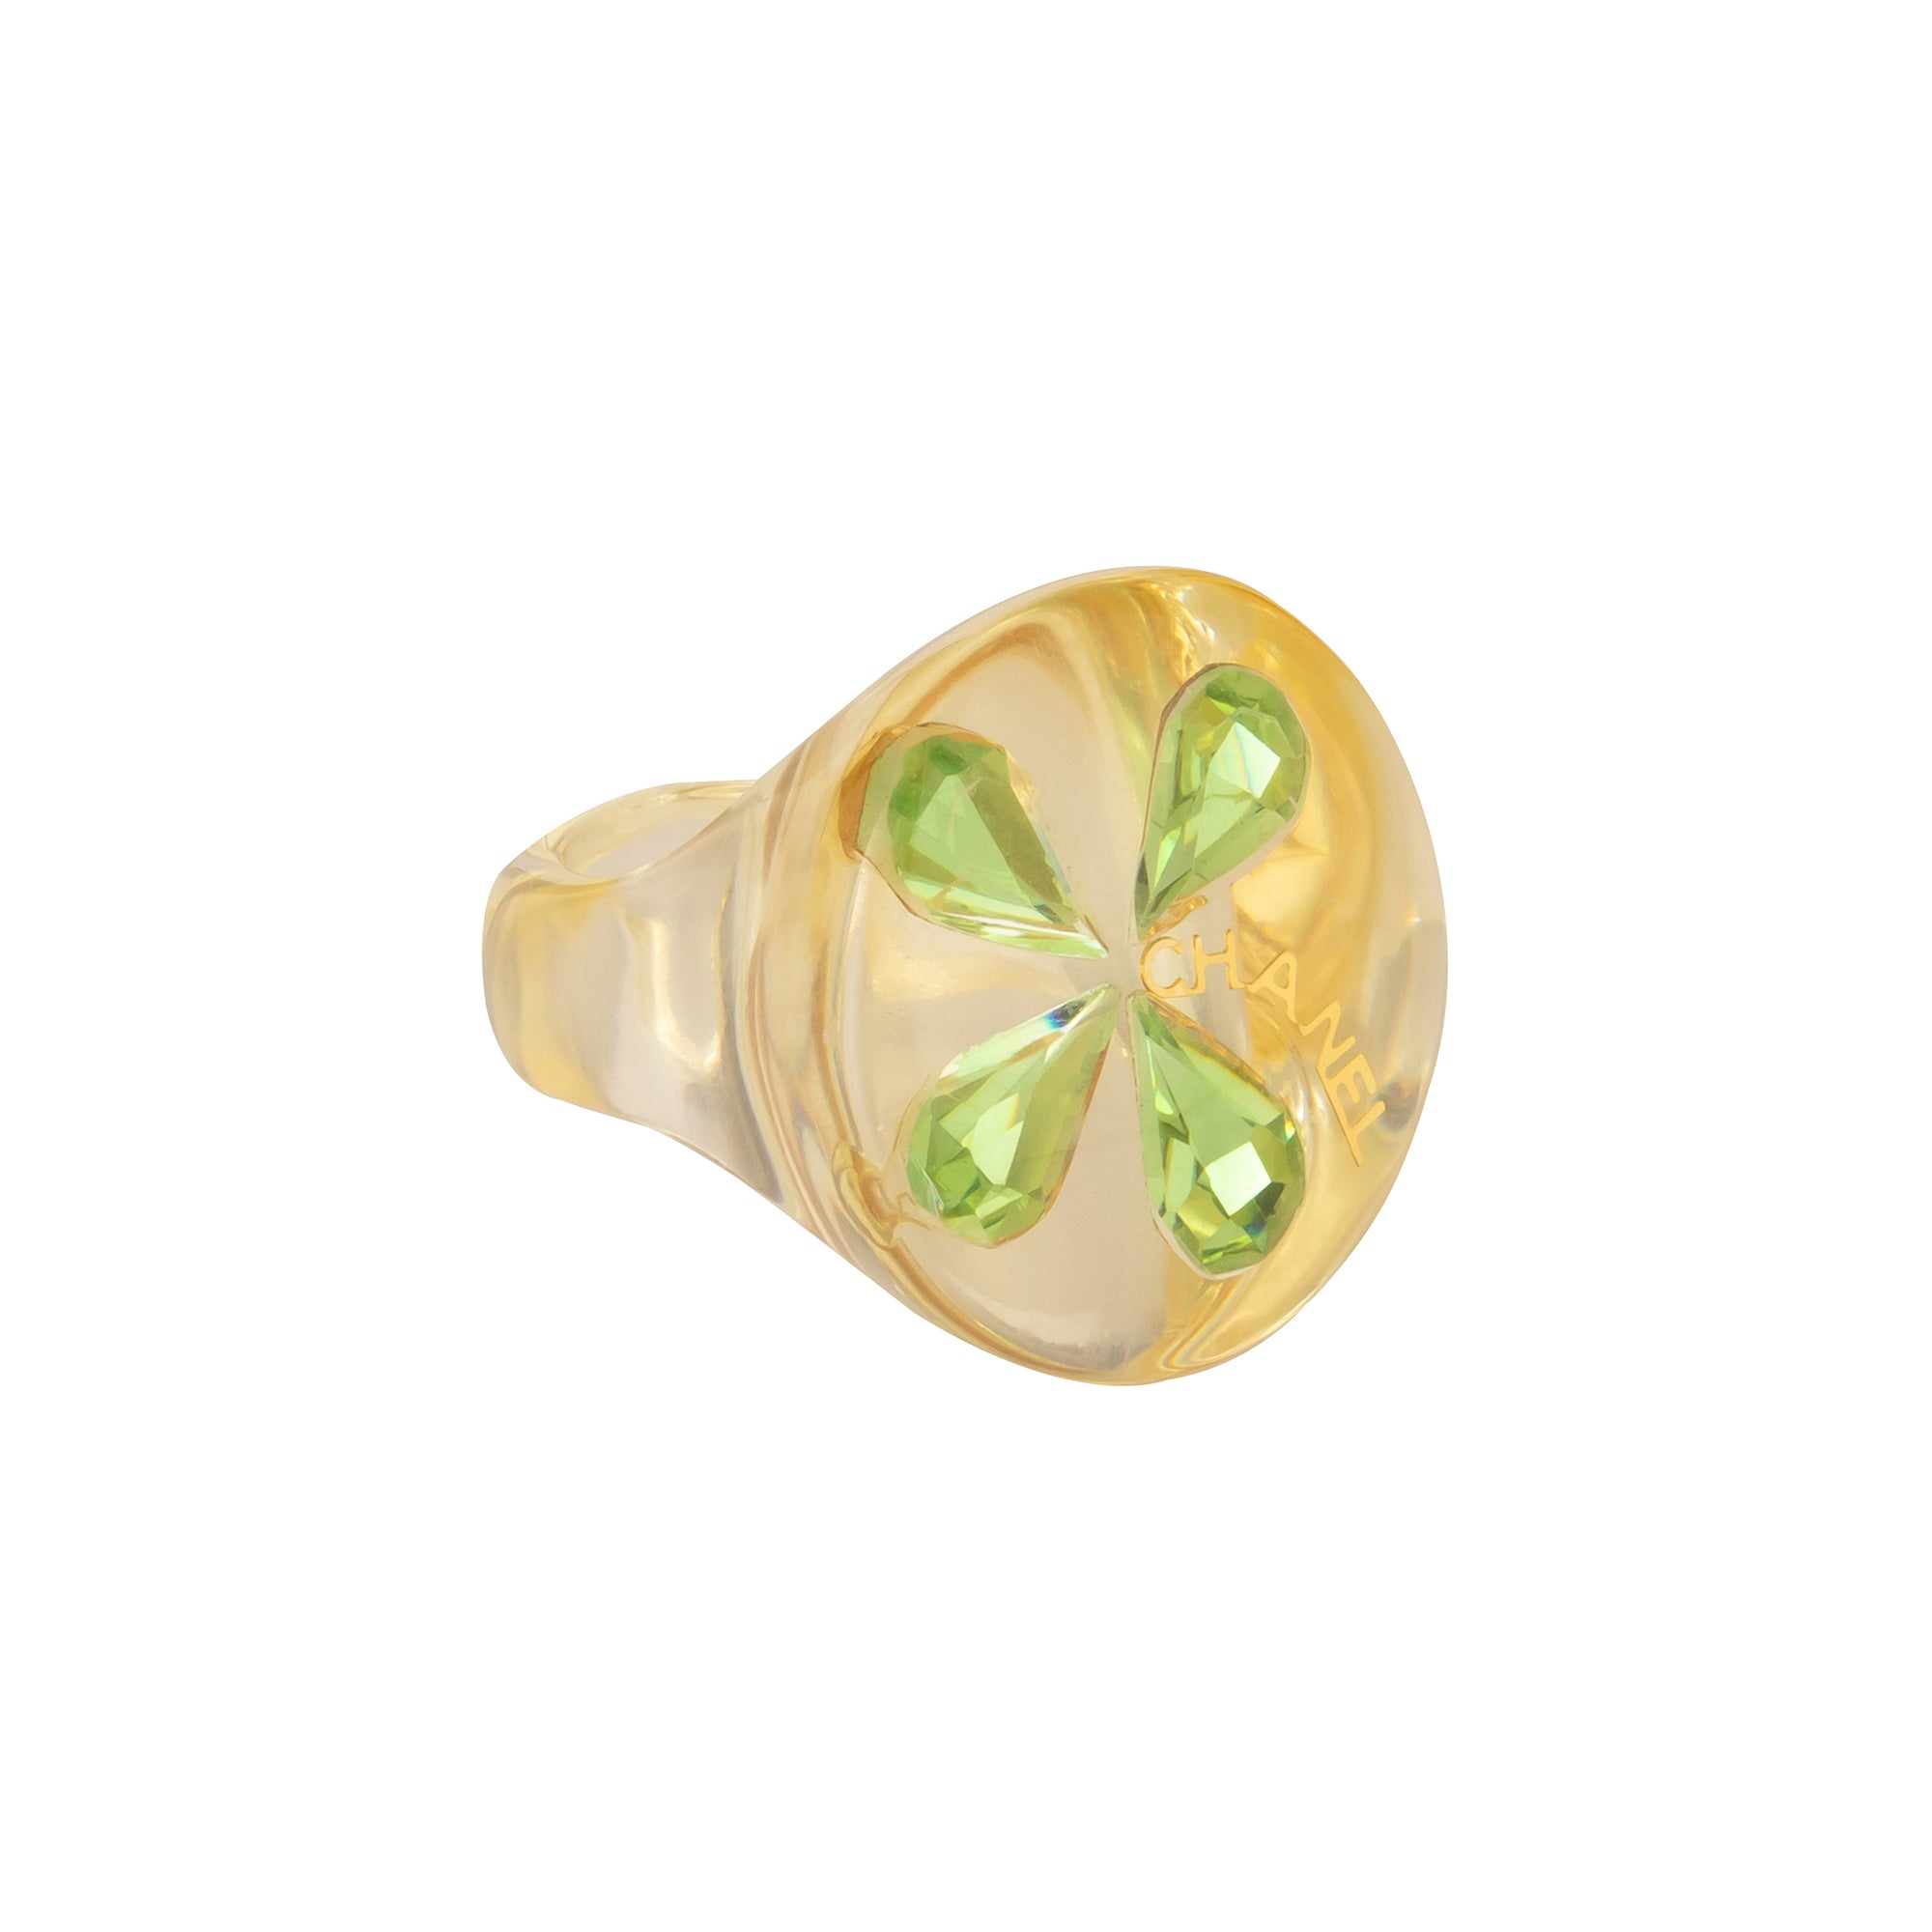 Chanel Clear Acrylic 4 Green Pear Ring - Antique & Vintage - Rings | Broken English Jewelry